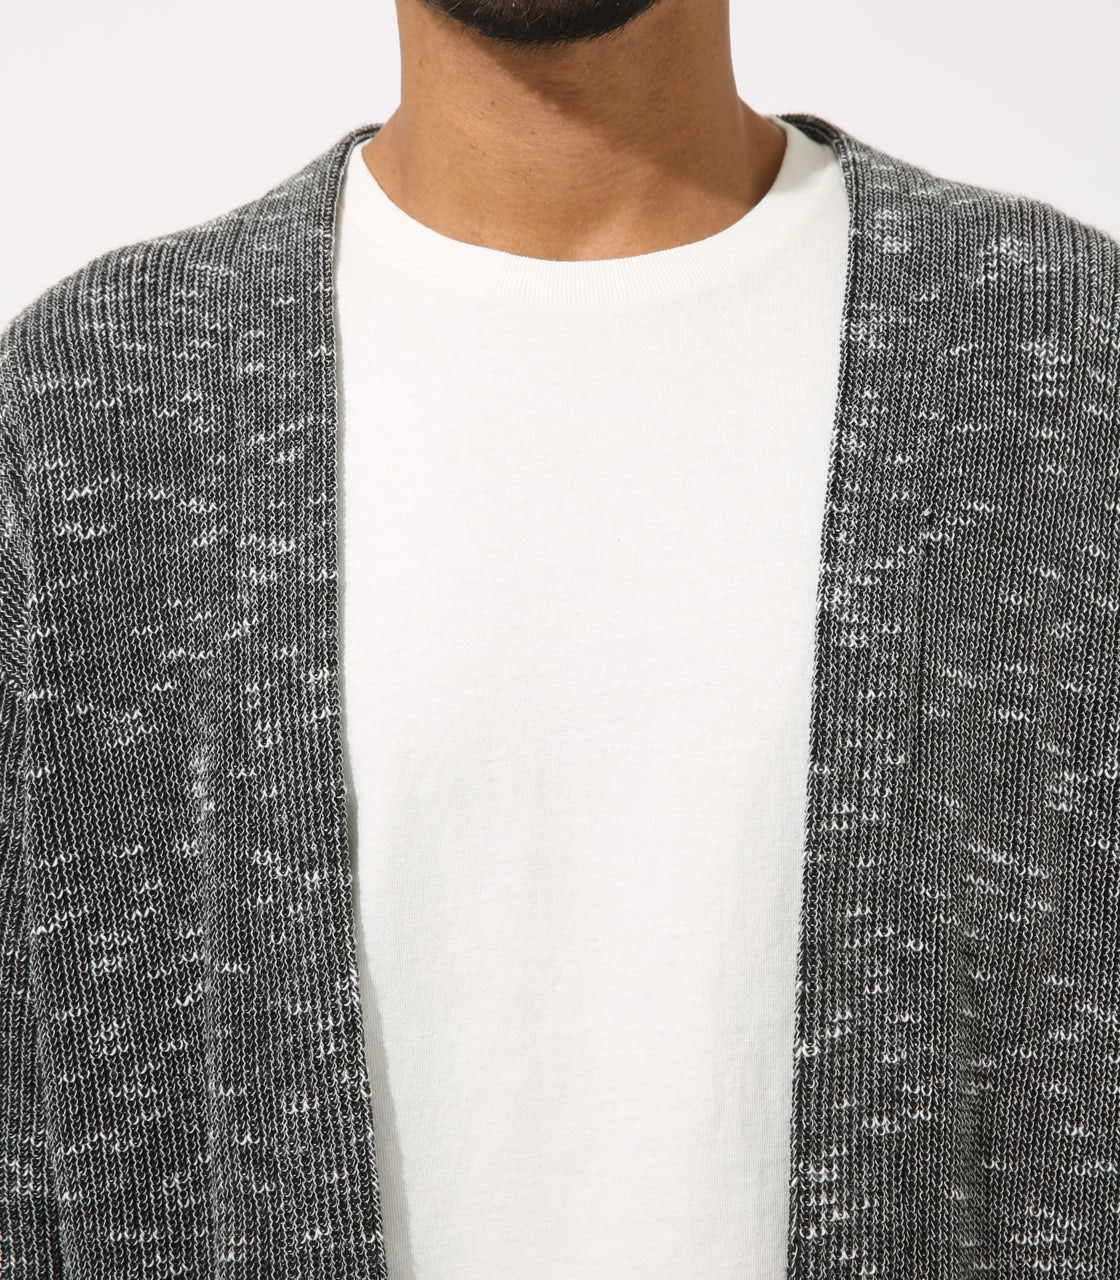 【AZUL BY MOUSSY】RIB STITCH CARDIGAN 詳細画像 柄BLK 8